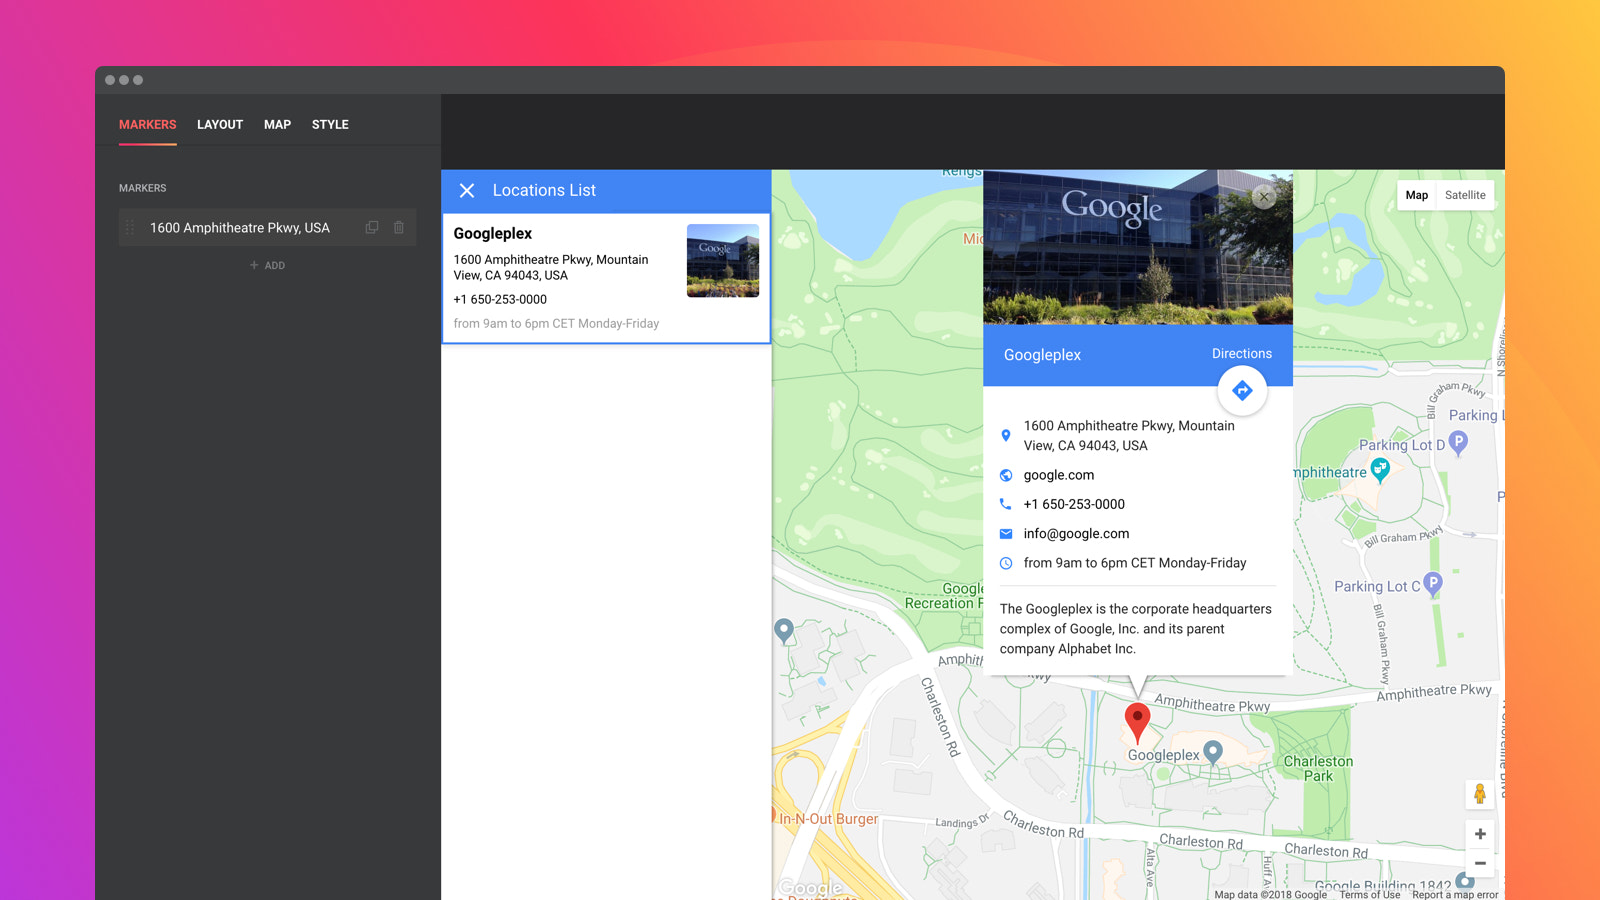 Store Locator to add detailed contact info to locations